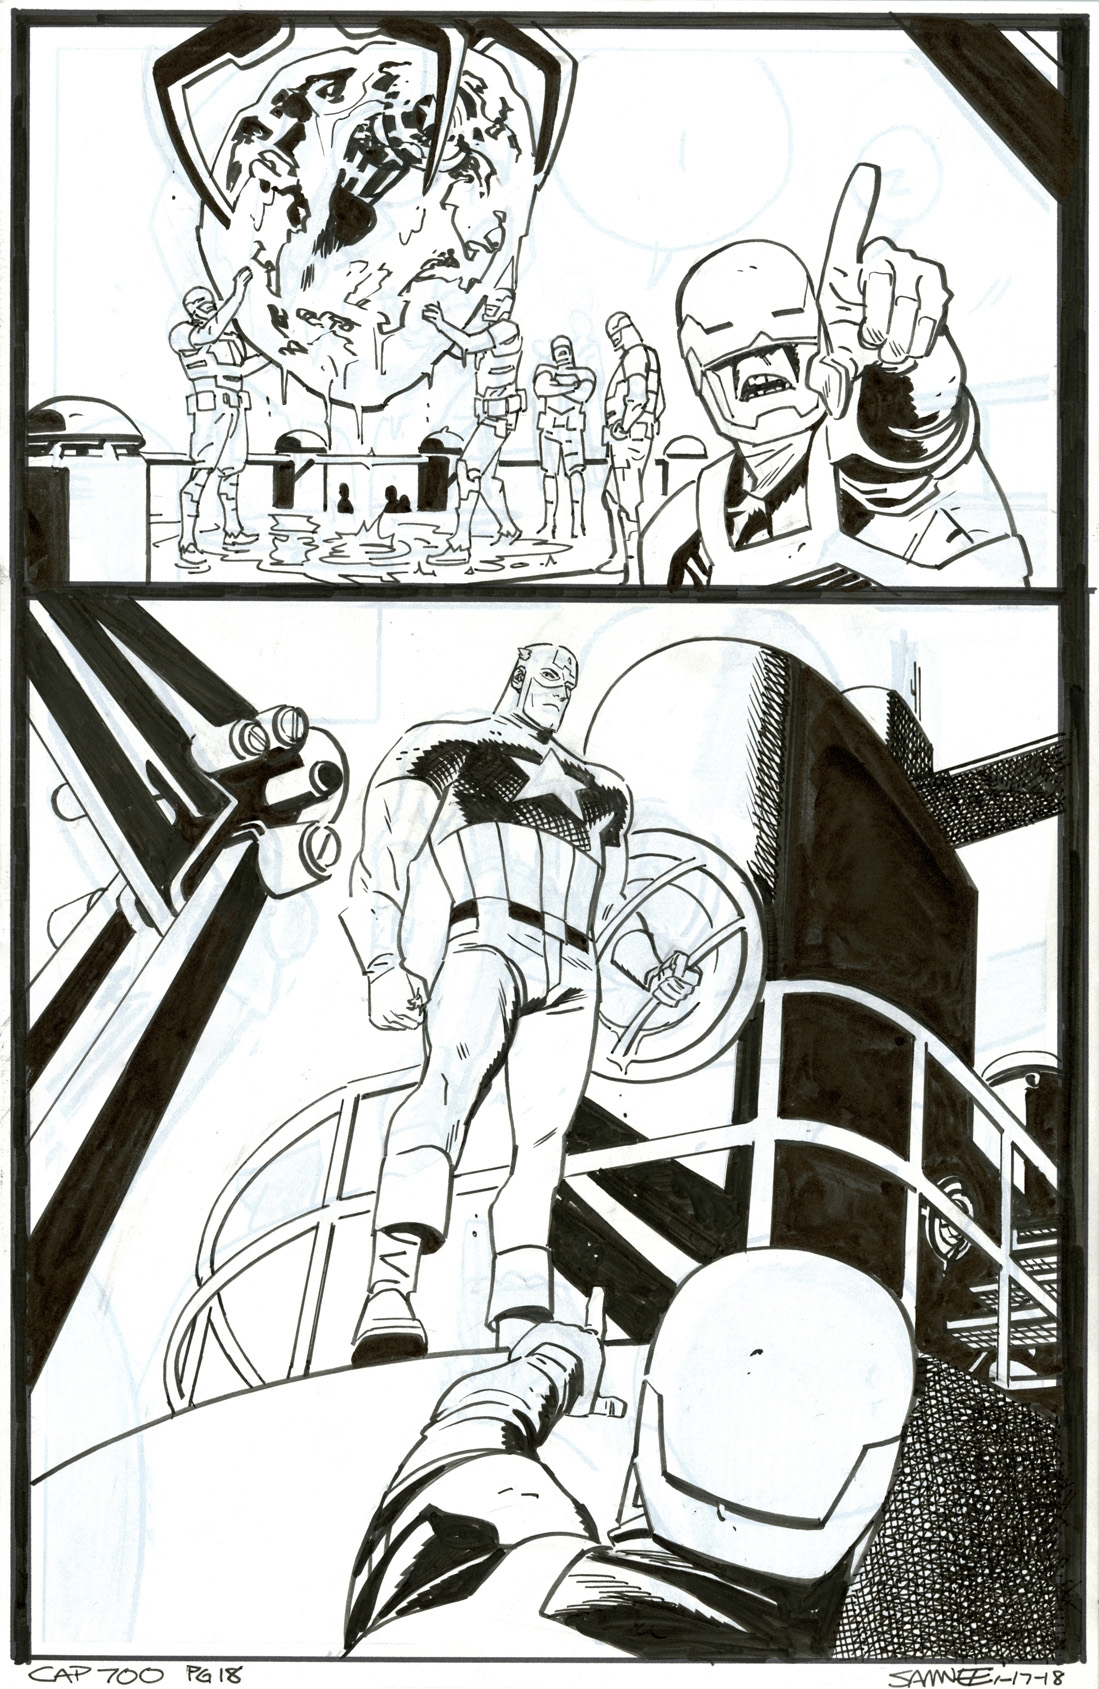 captain america 700 page 18 by chris samnee in brendon and brian Star Wars Hero Mashers hot auctions